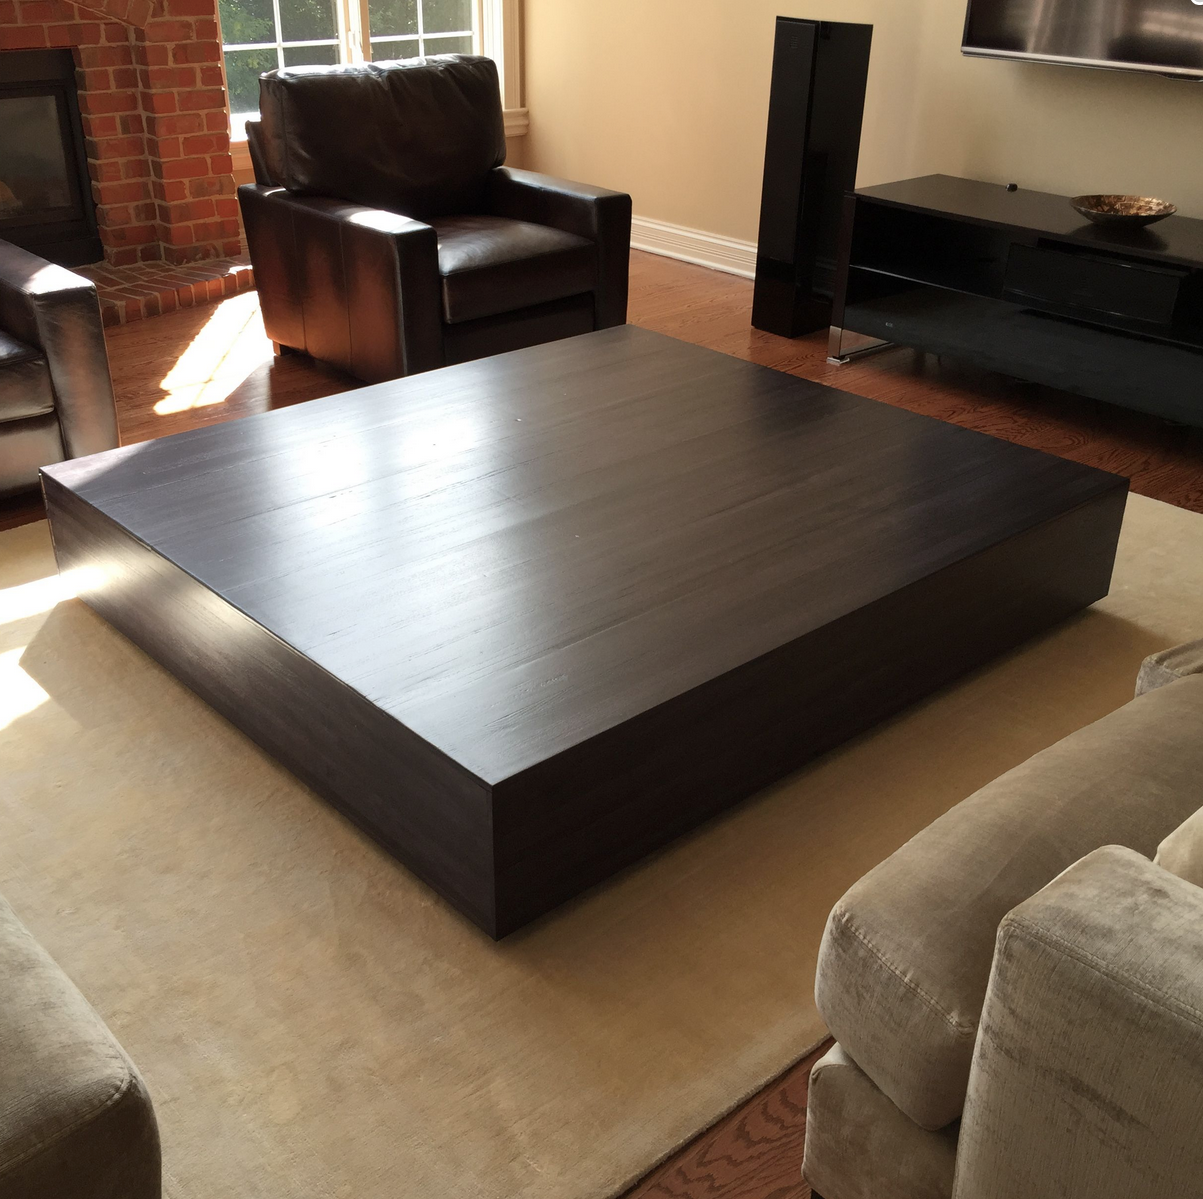 Large Inlay Coffee Table Coffee Table Coffee Table Wood Coffee Table Inspiration [ 1199 x 1203 Pixel ]